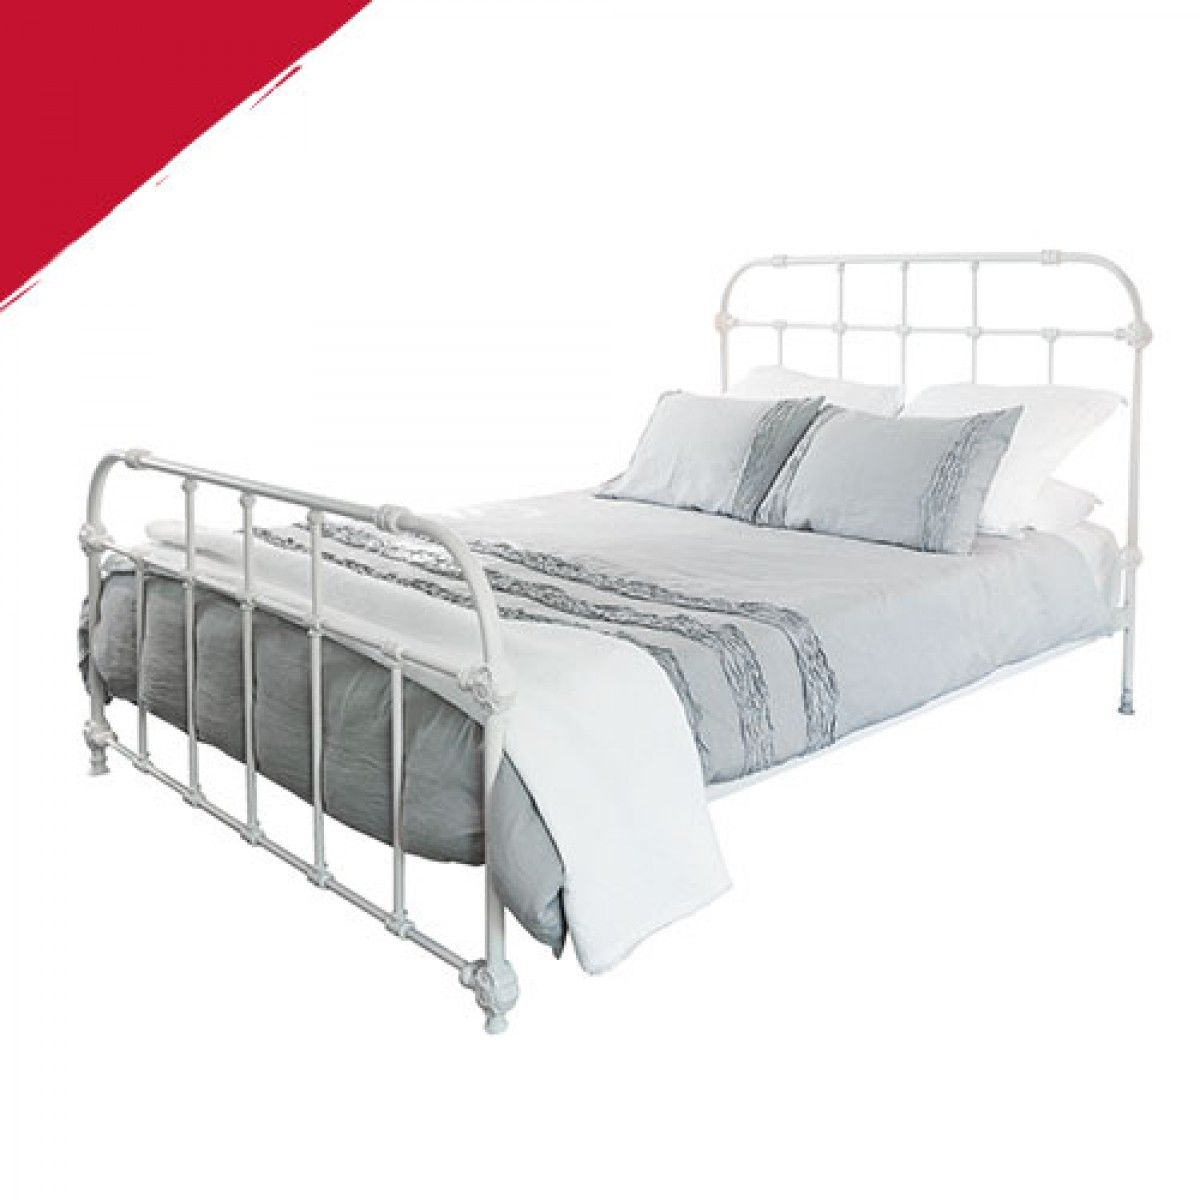 Buy Online Early Settler Vintage Bed Frames. | myrtle beach ...